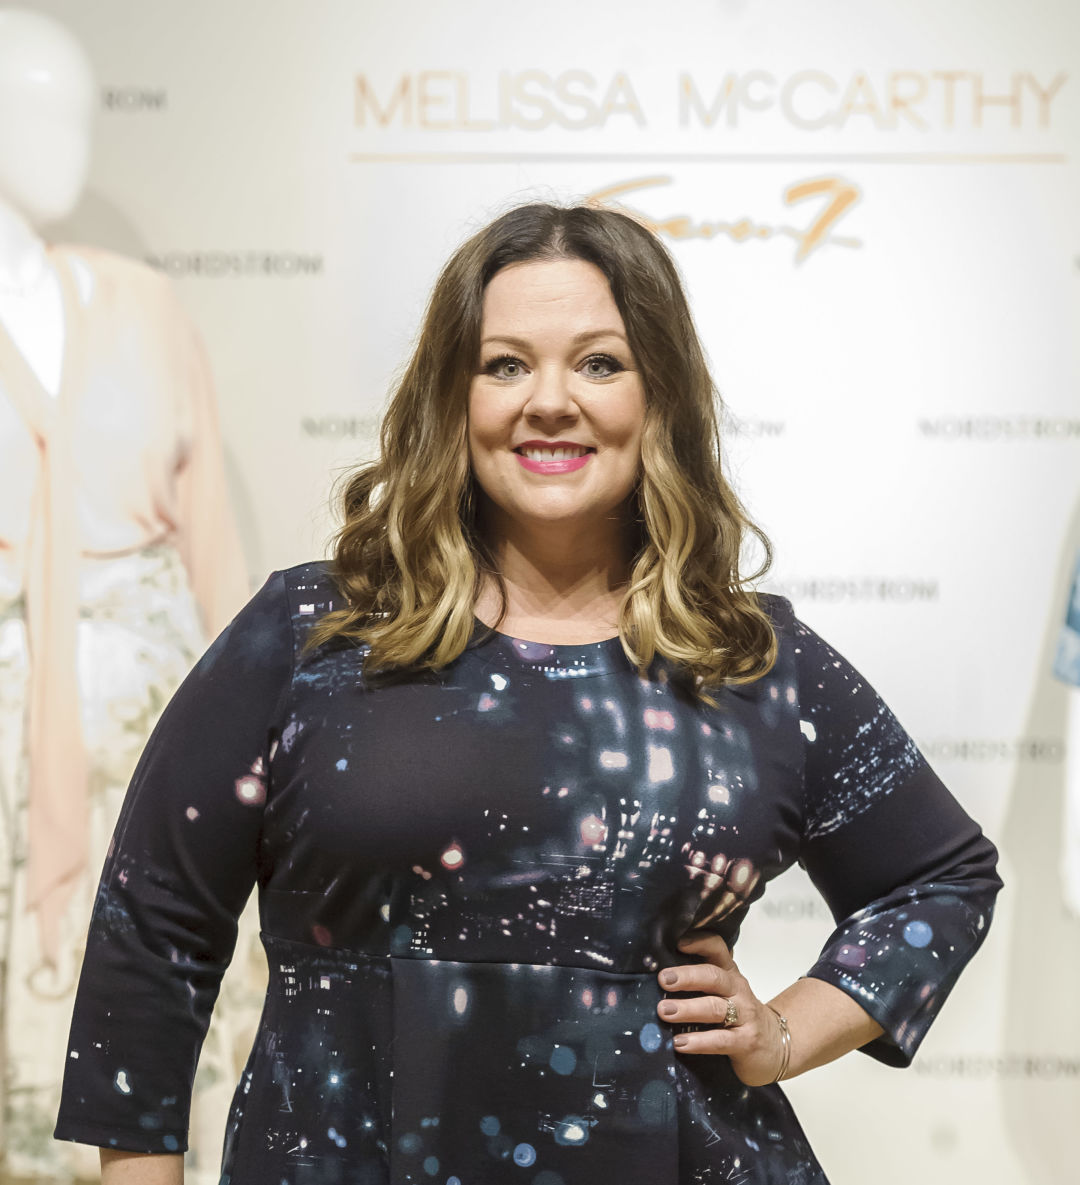 76d586a8e6b 578972306 lihl0l. Image courtesy of Melissa McCarthy Seven7 and Nordstrom.